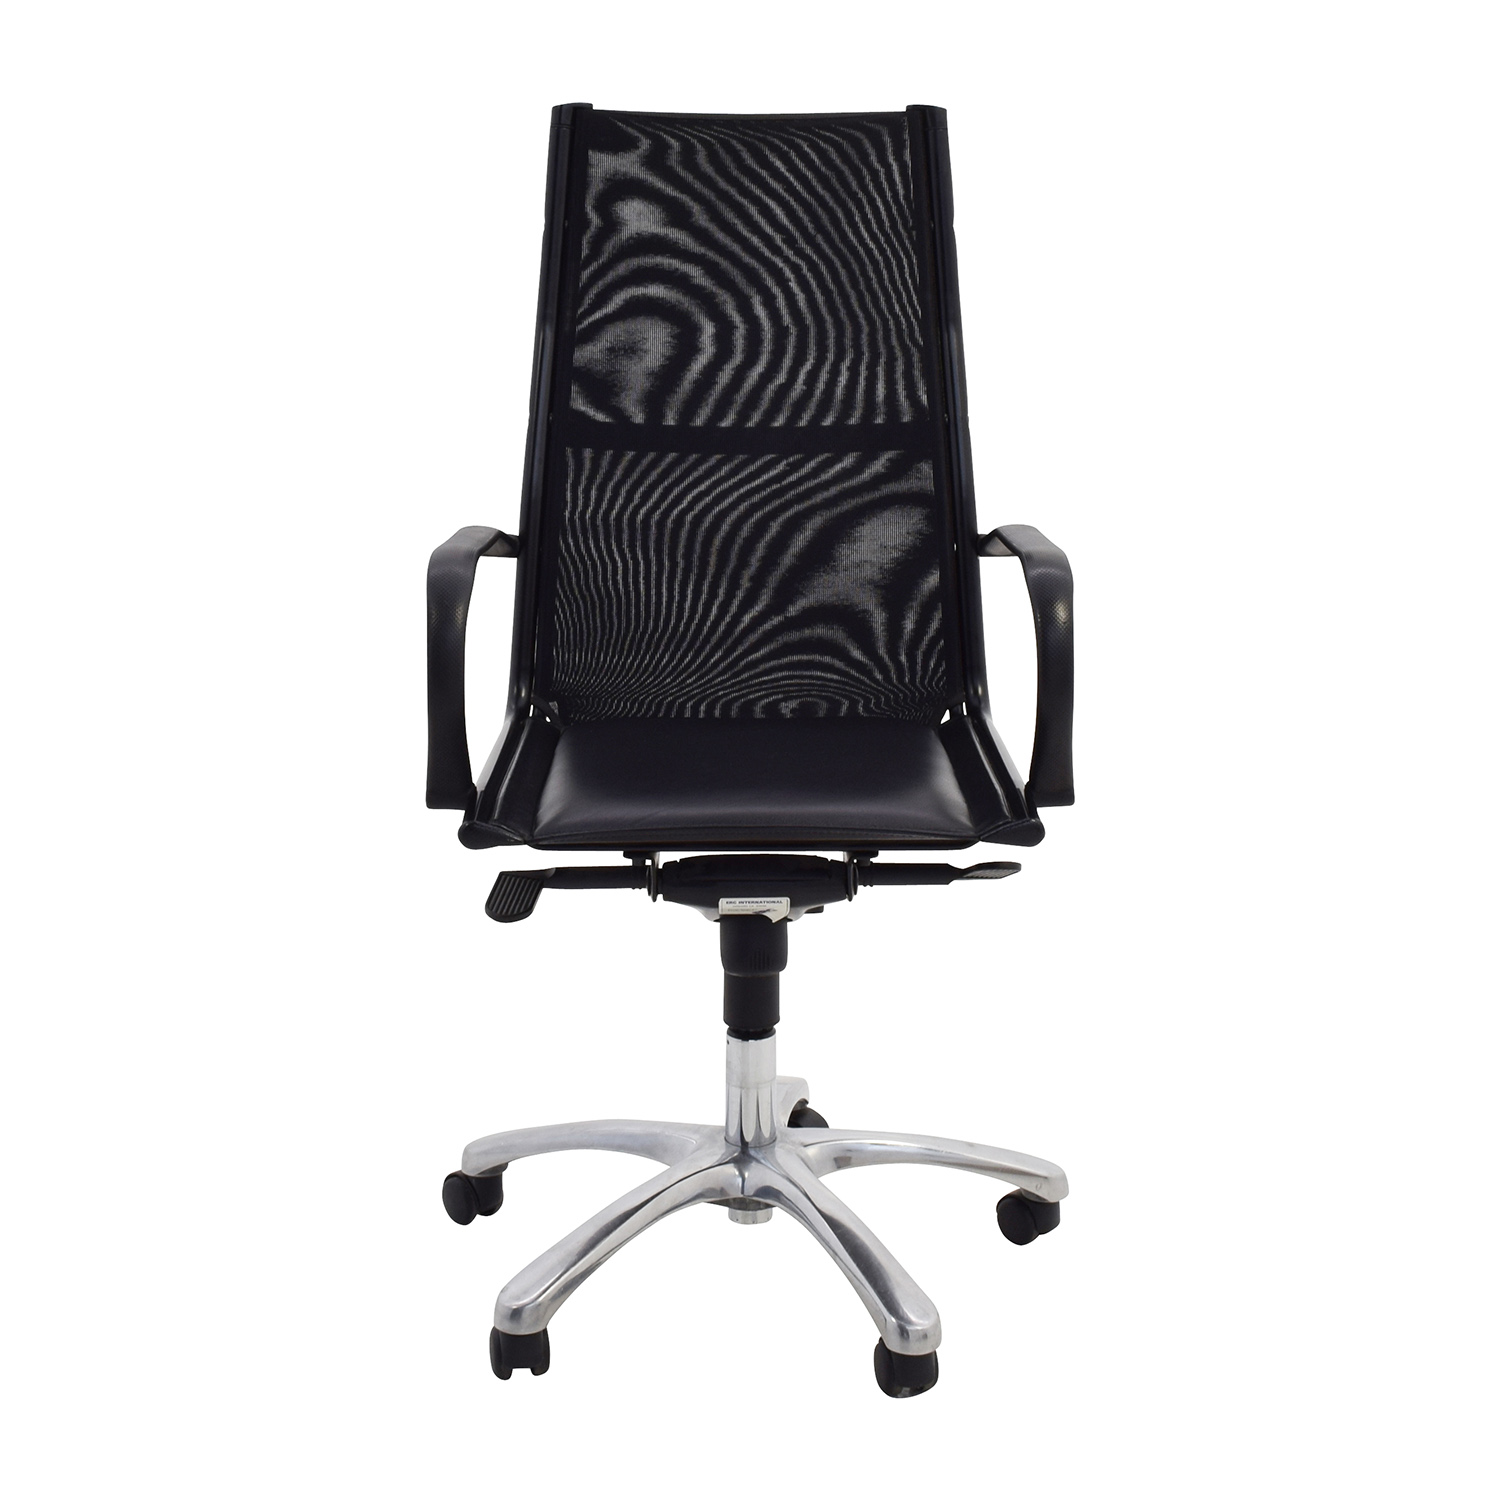 ERG International ERG International Black Office Chair Chairs